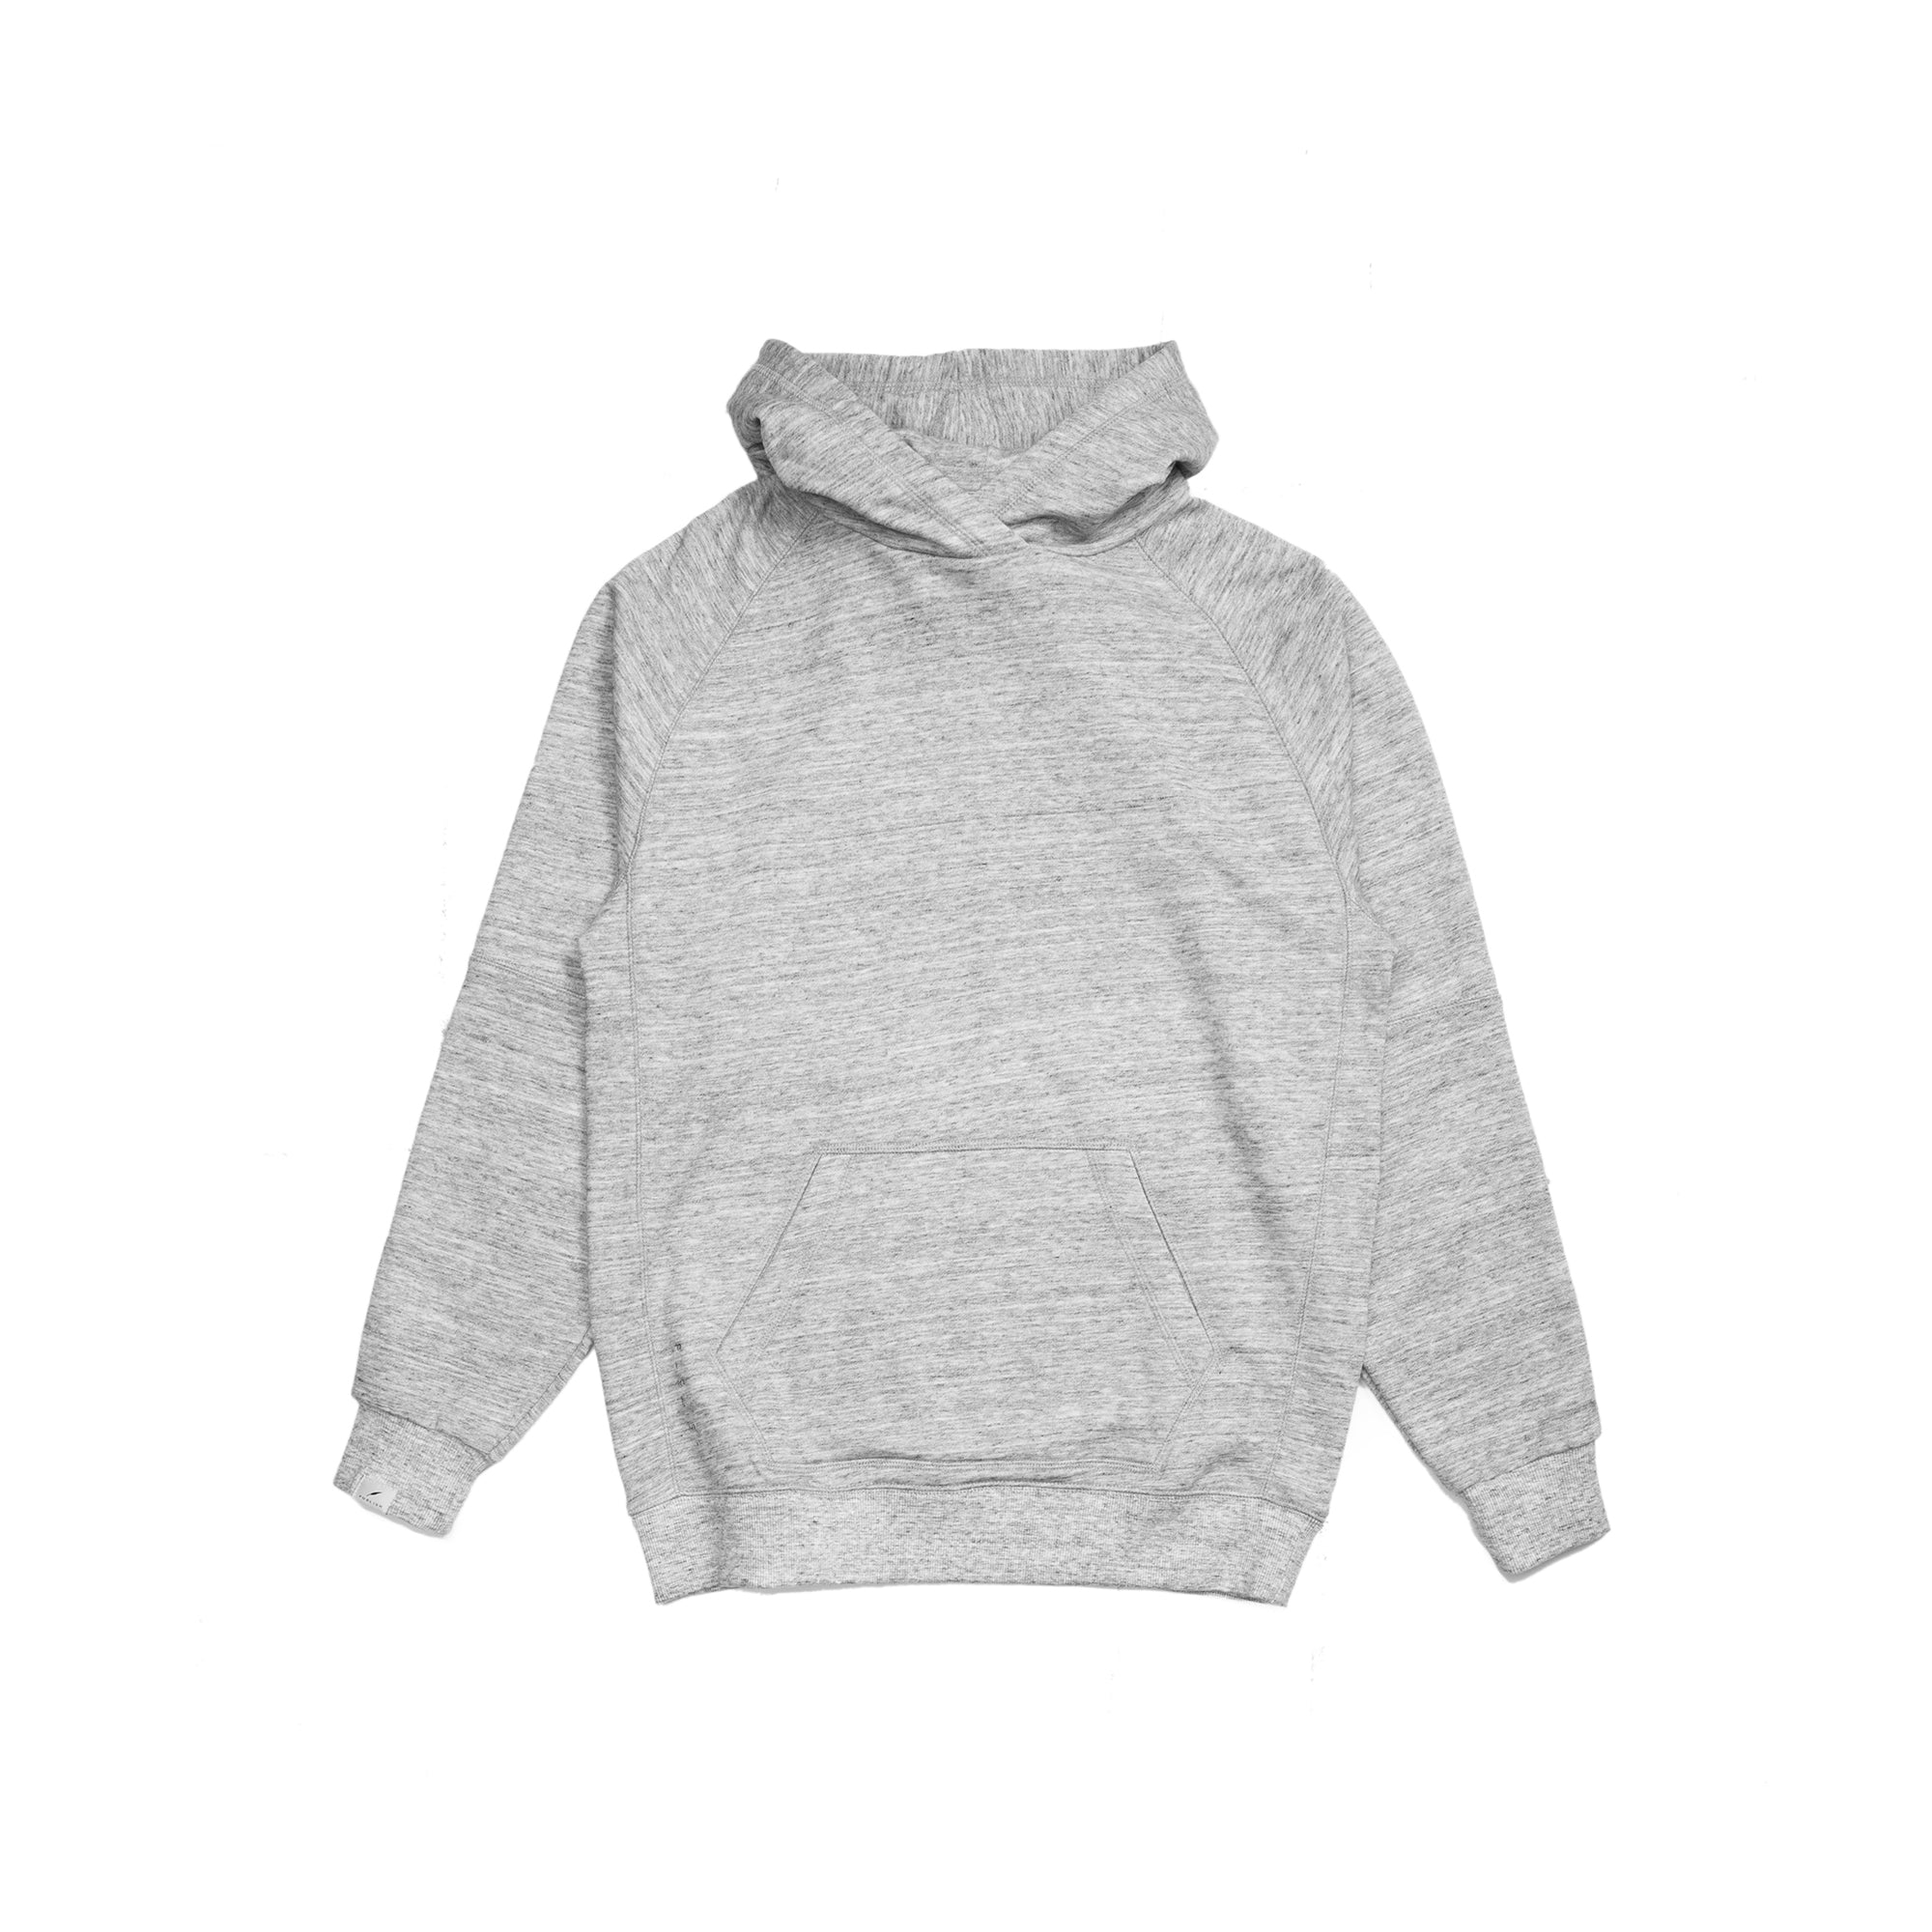 Index Terry Hoodie - Heather